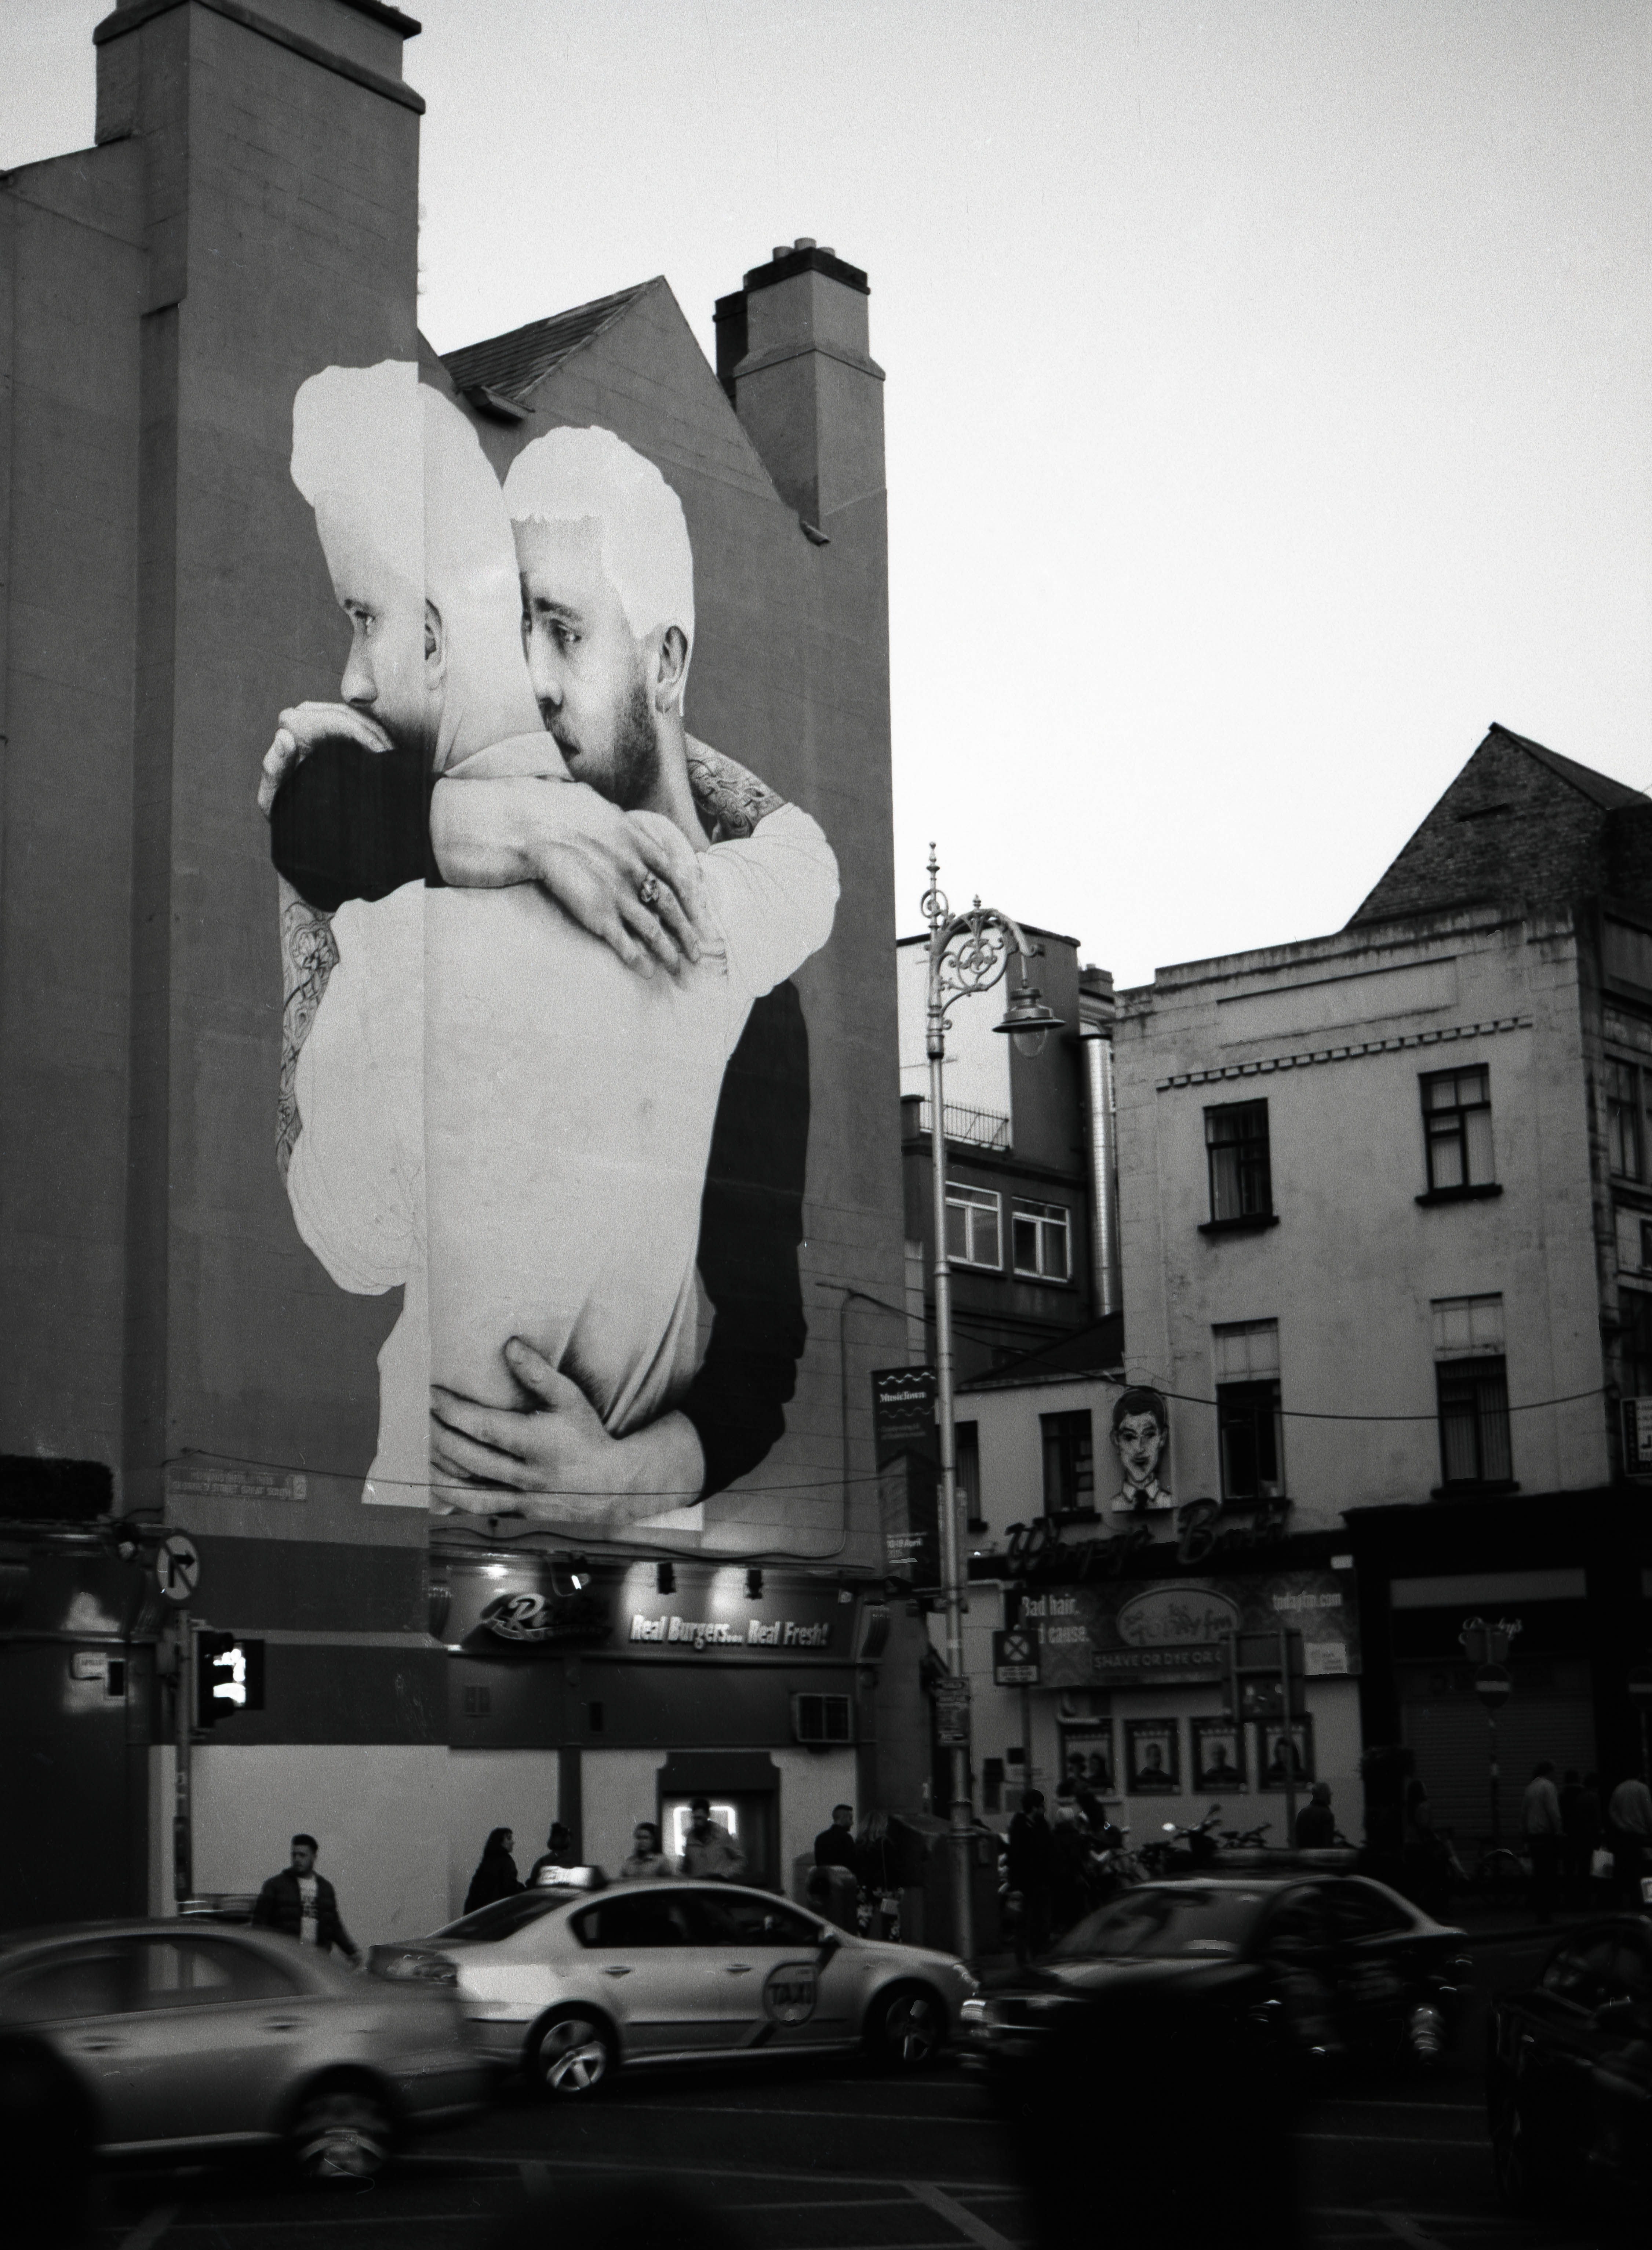 Mural by Joe Caslin in Dublin as part of the Yes Equality campaign